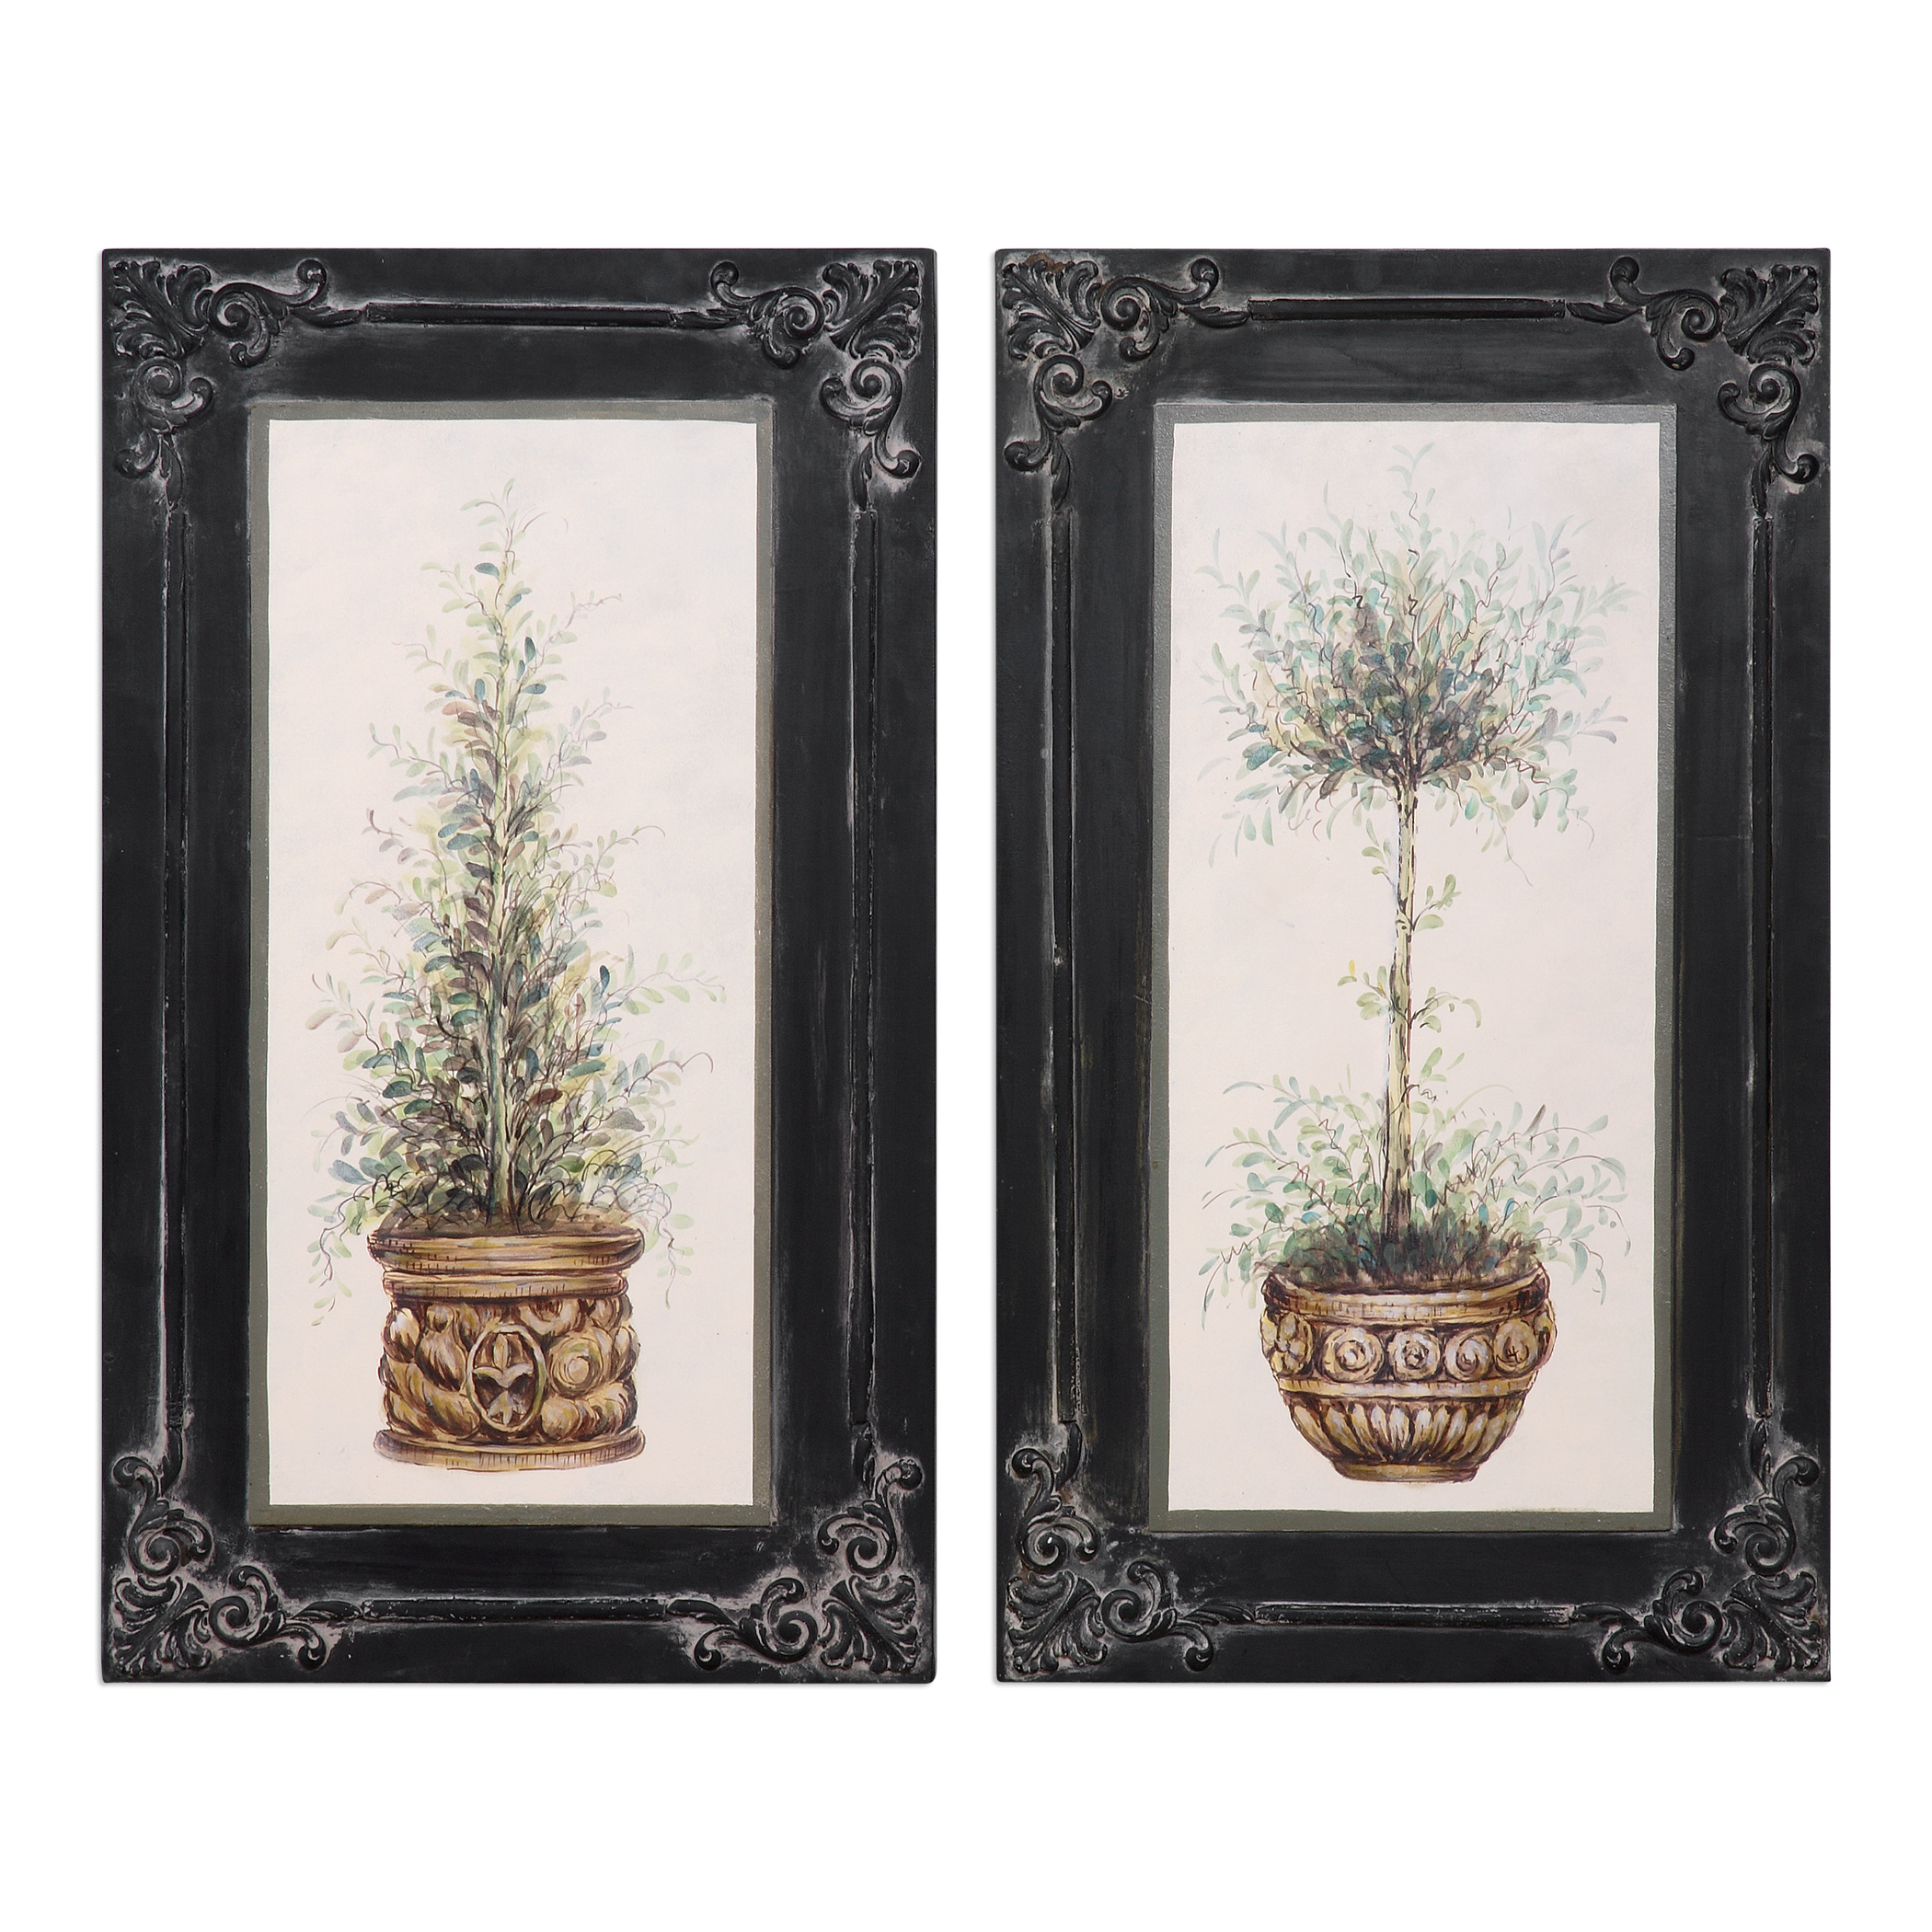 Uttermost Art Topiaries Hand Painted Art, S/2 - Item Number: 31404